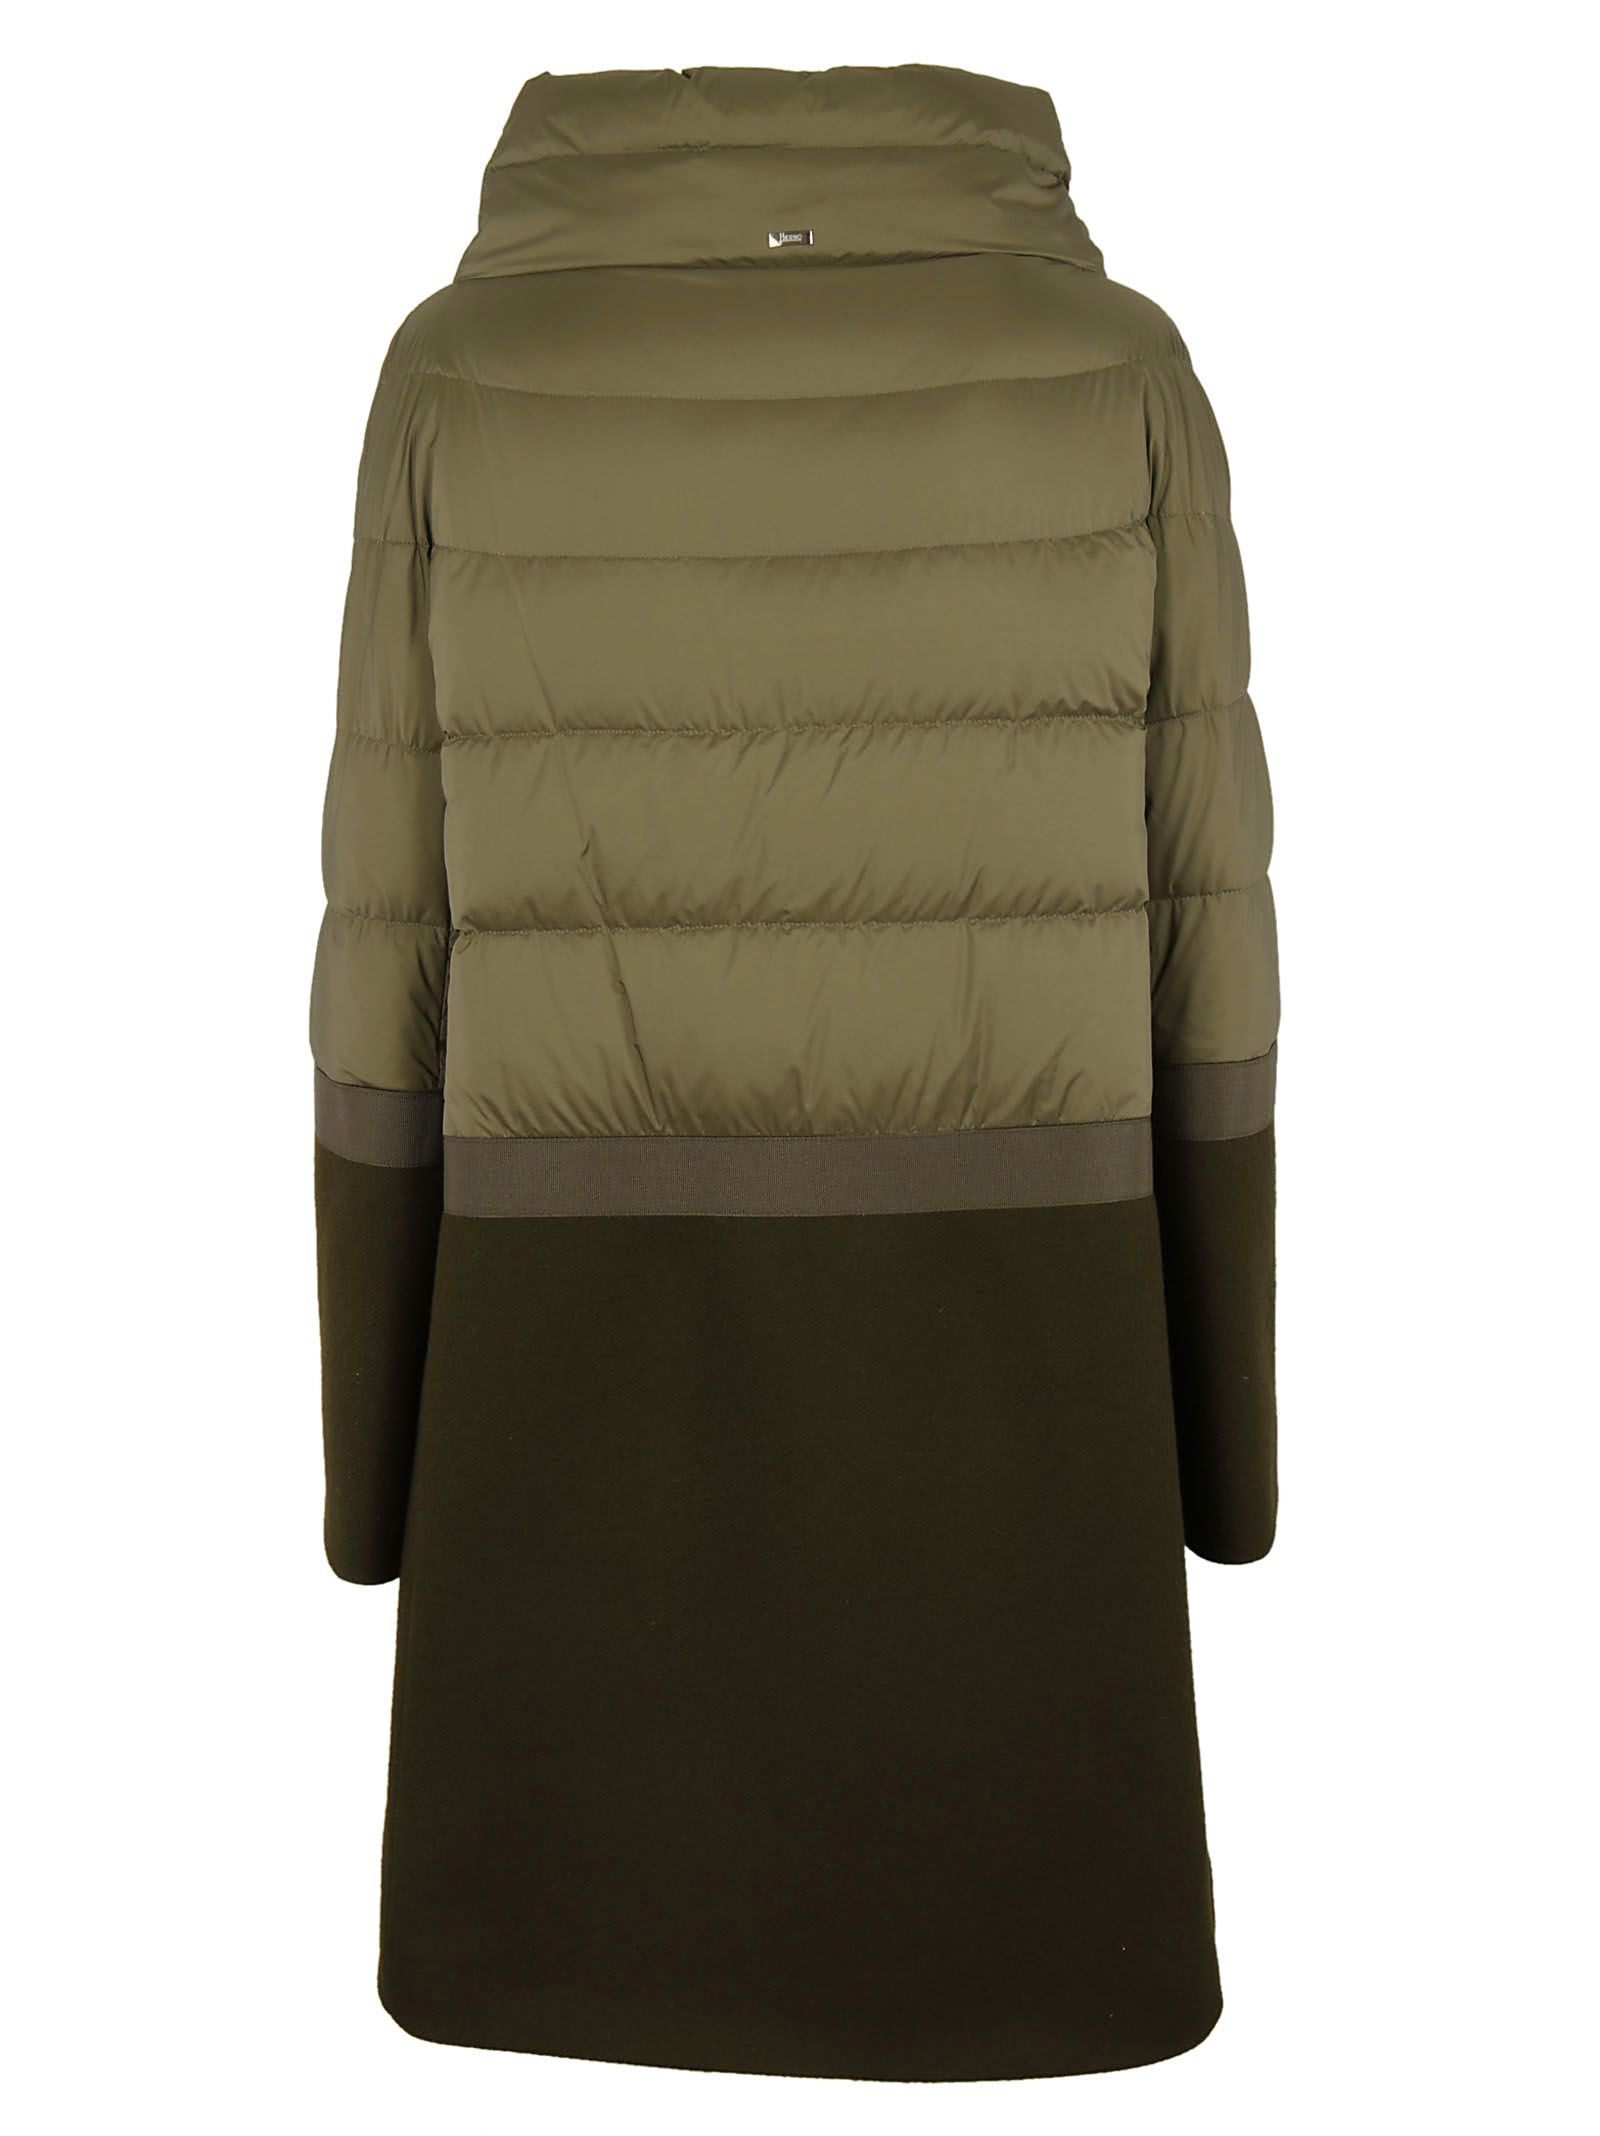 Herno - Herno Padded Coat - Green, Women's Coats | Italist